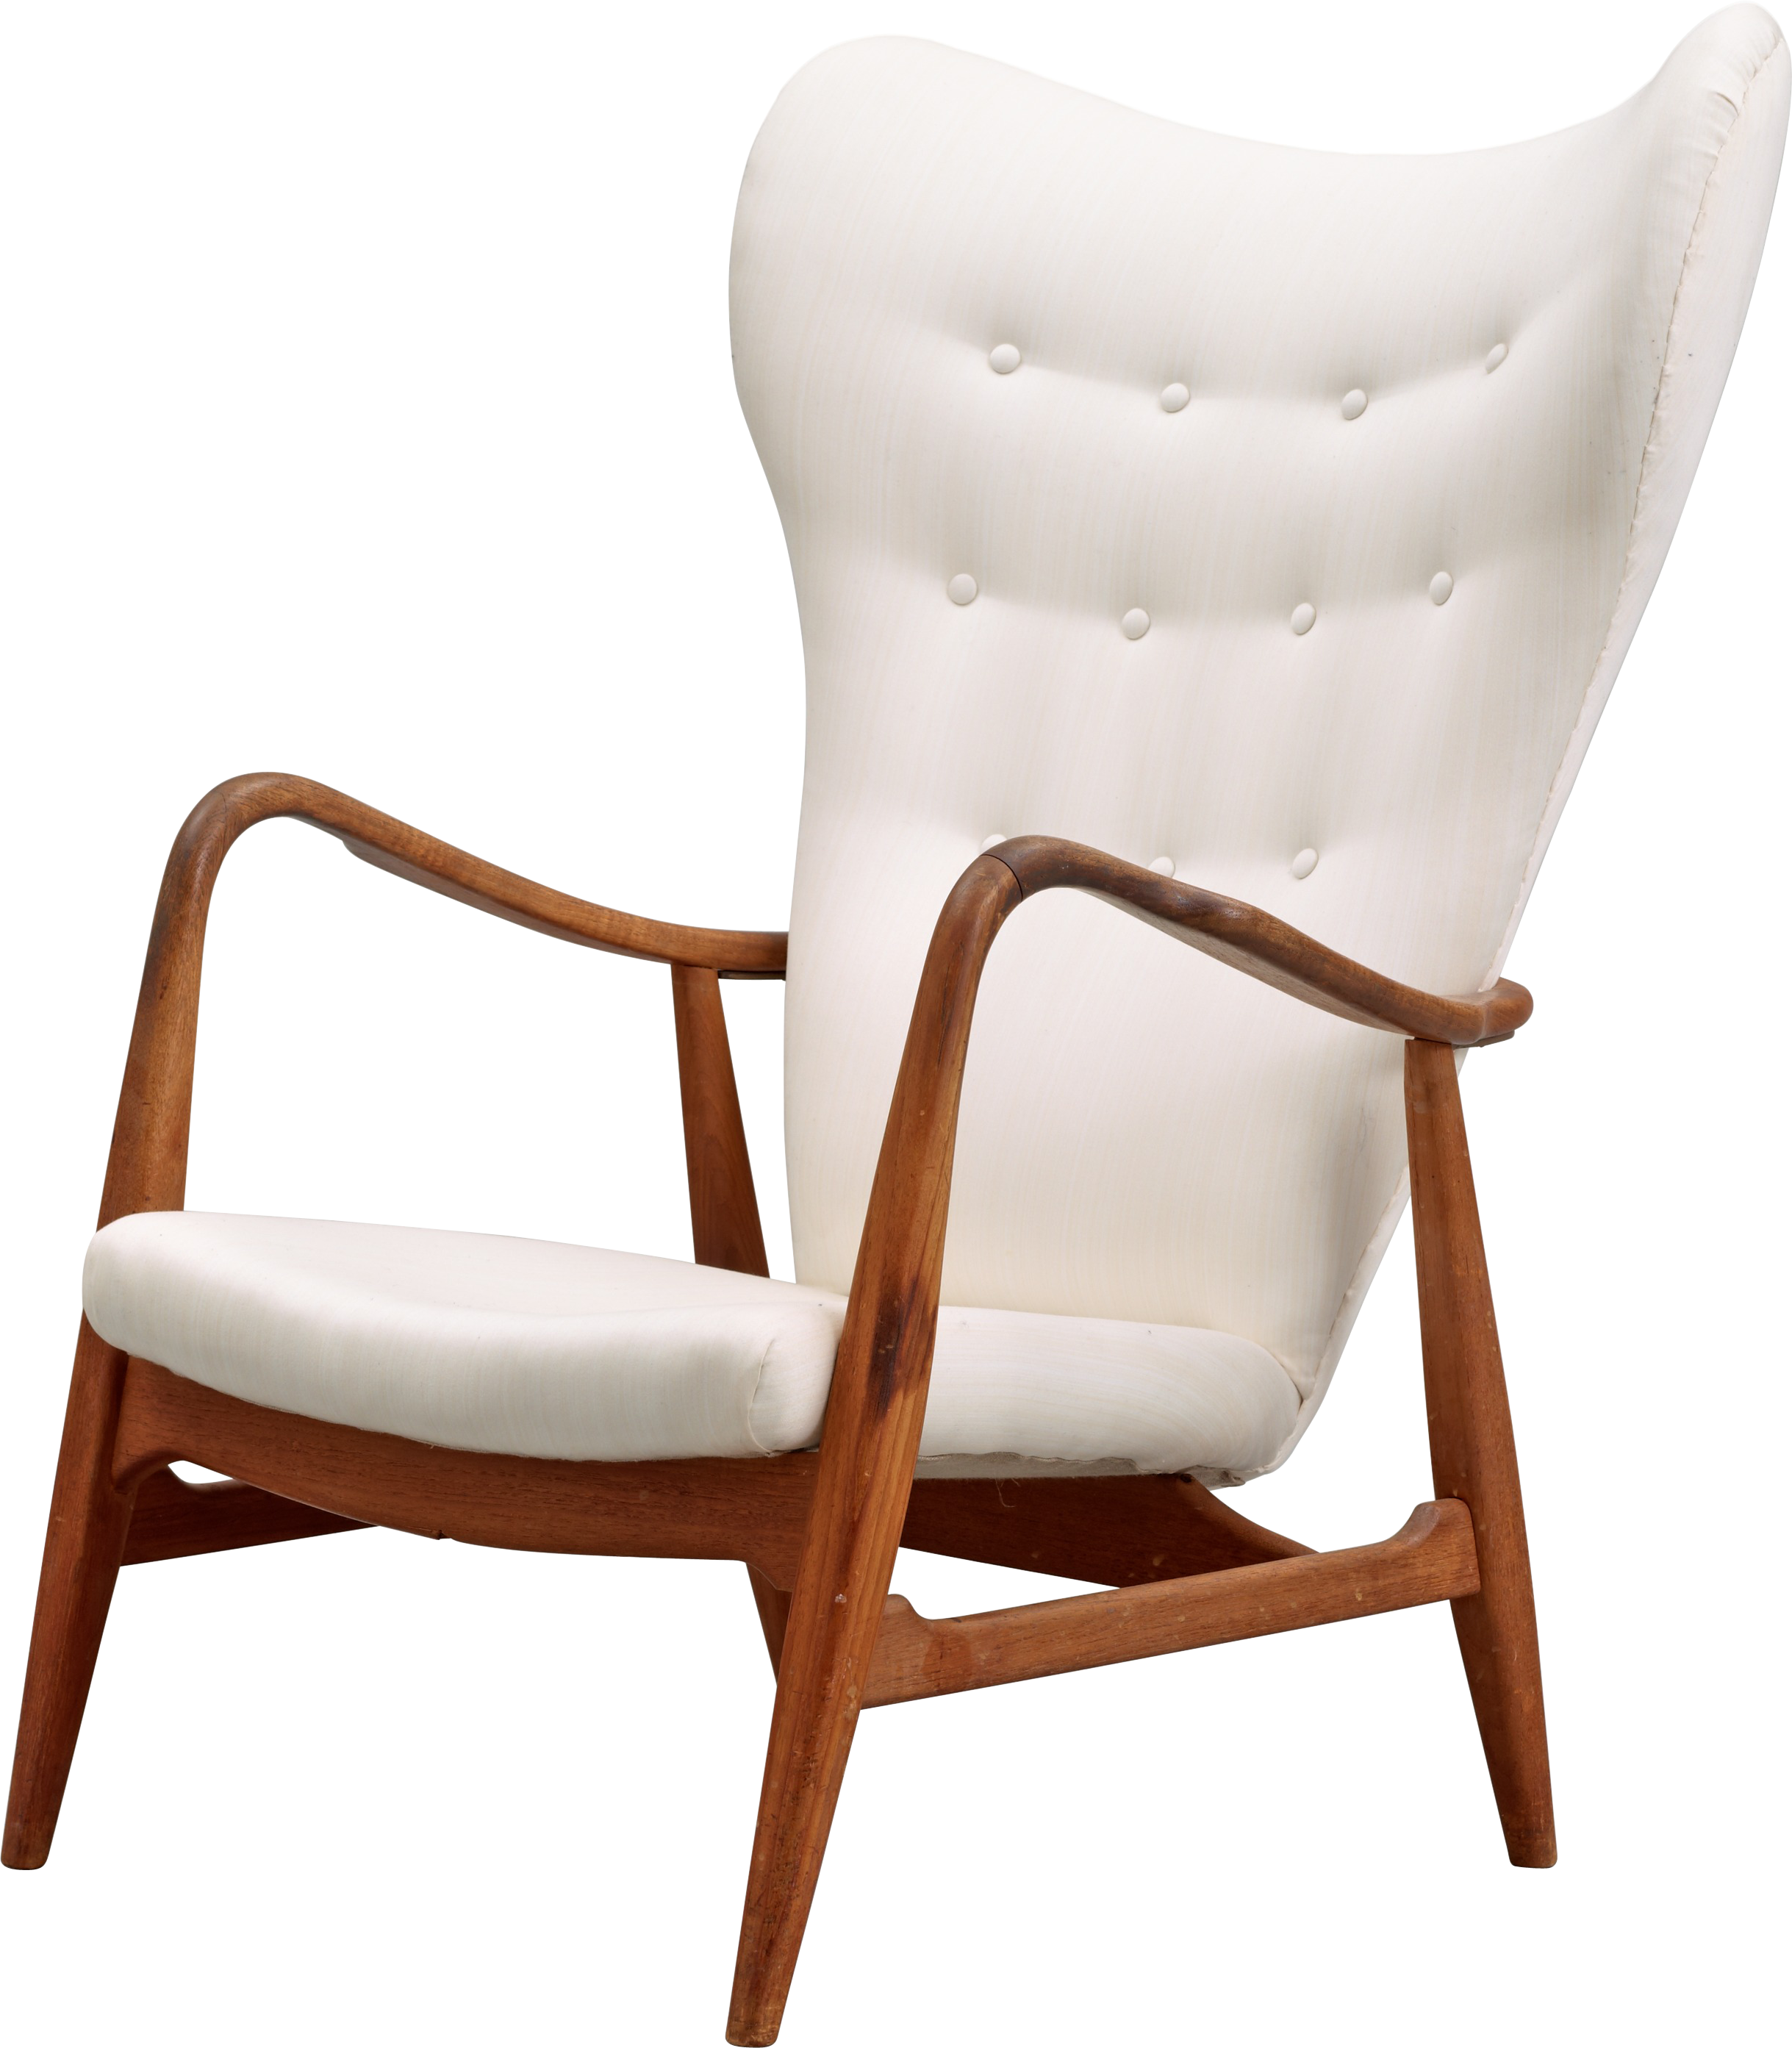 Download Png Image Armchair Png Image Chic Office Chair Lounge Chair Design World Market Chair